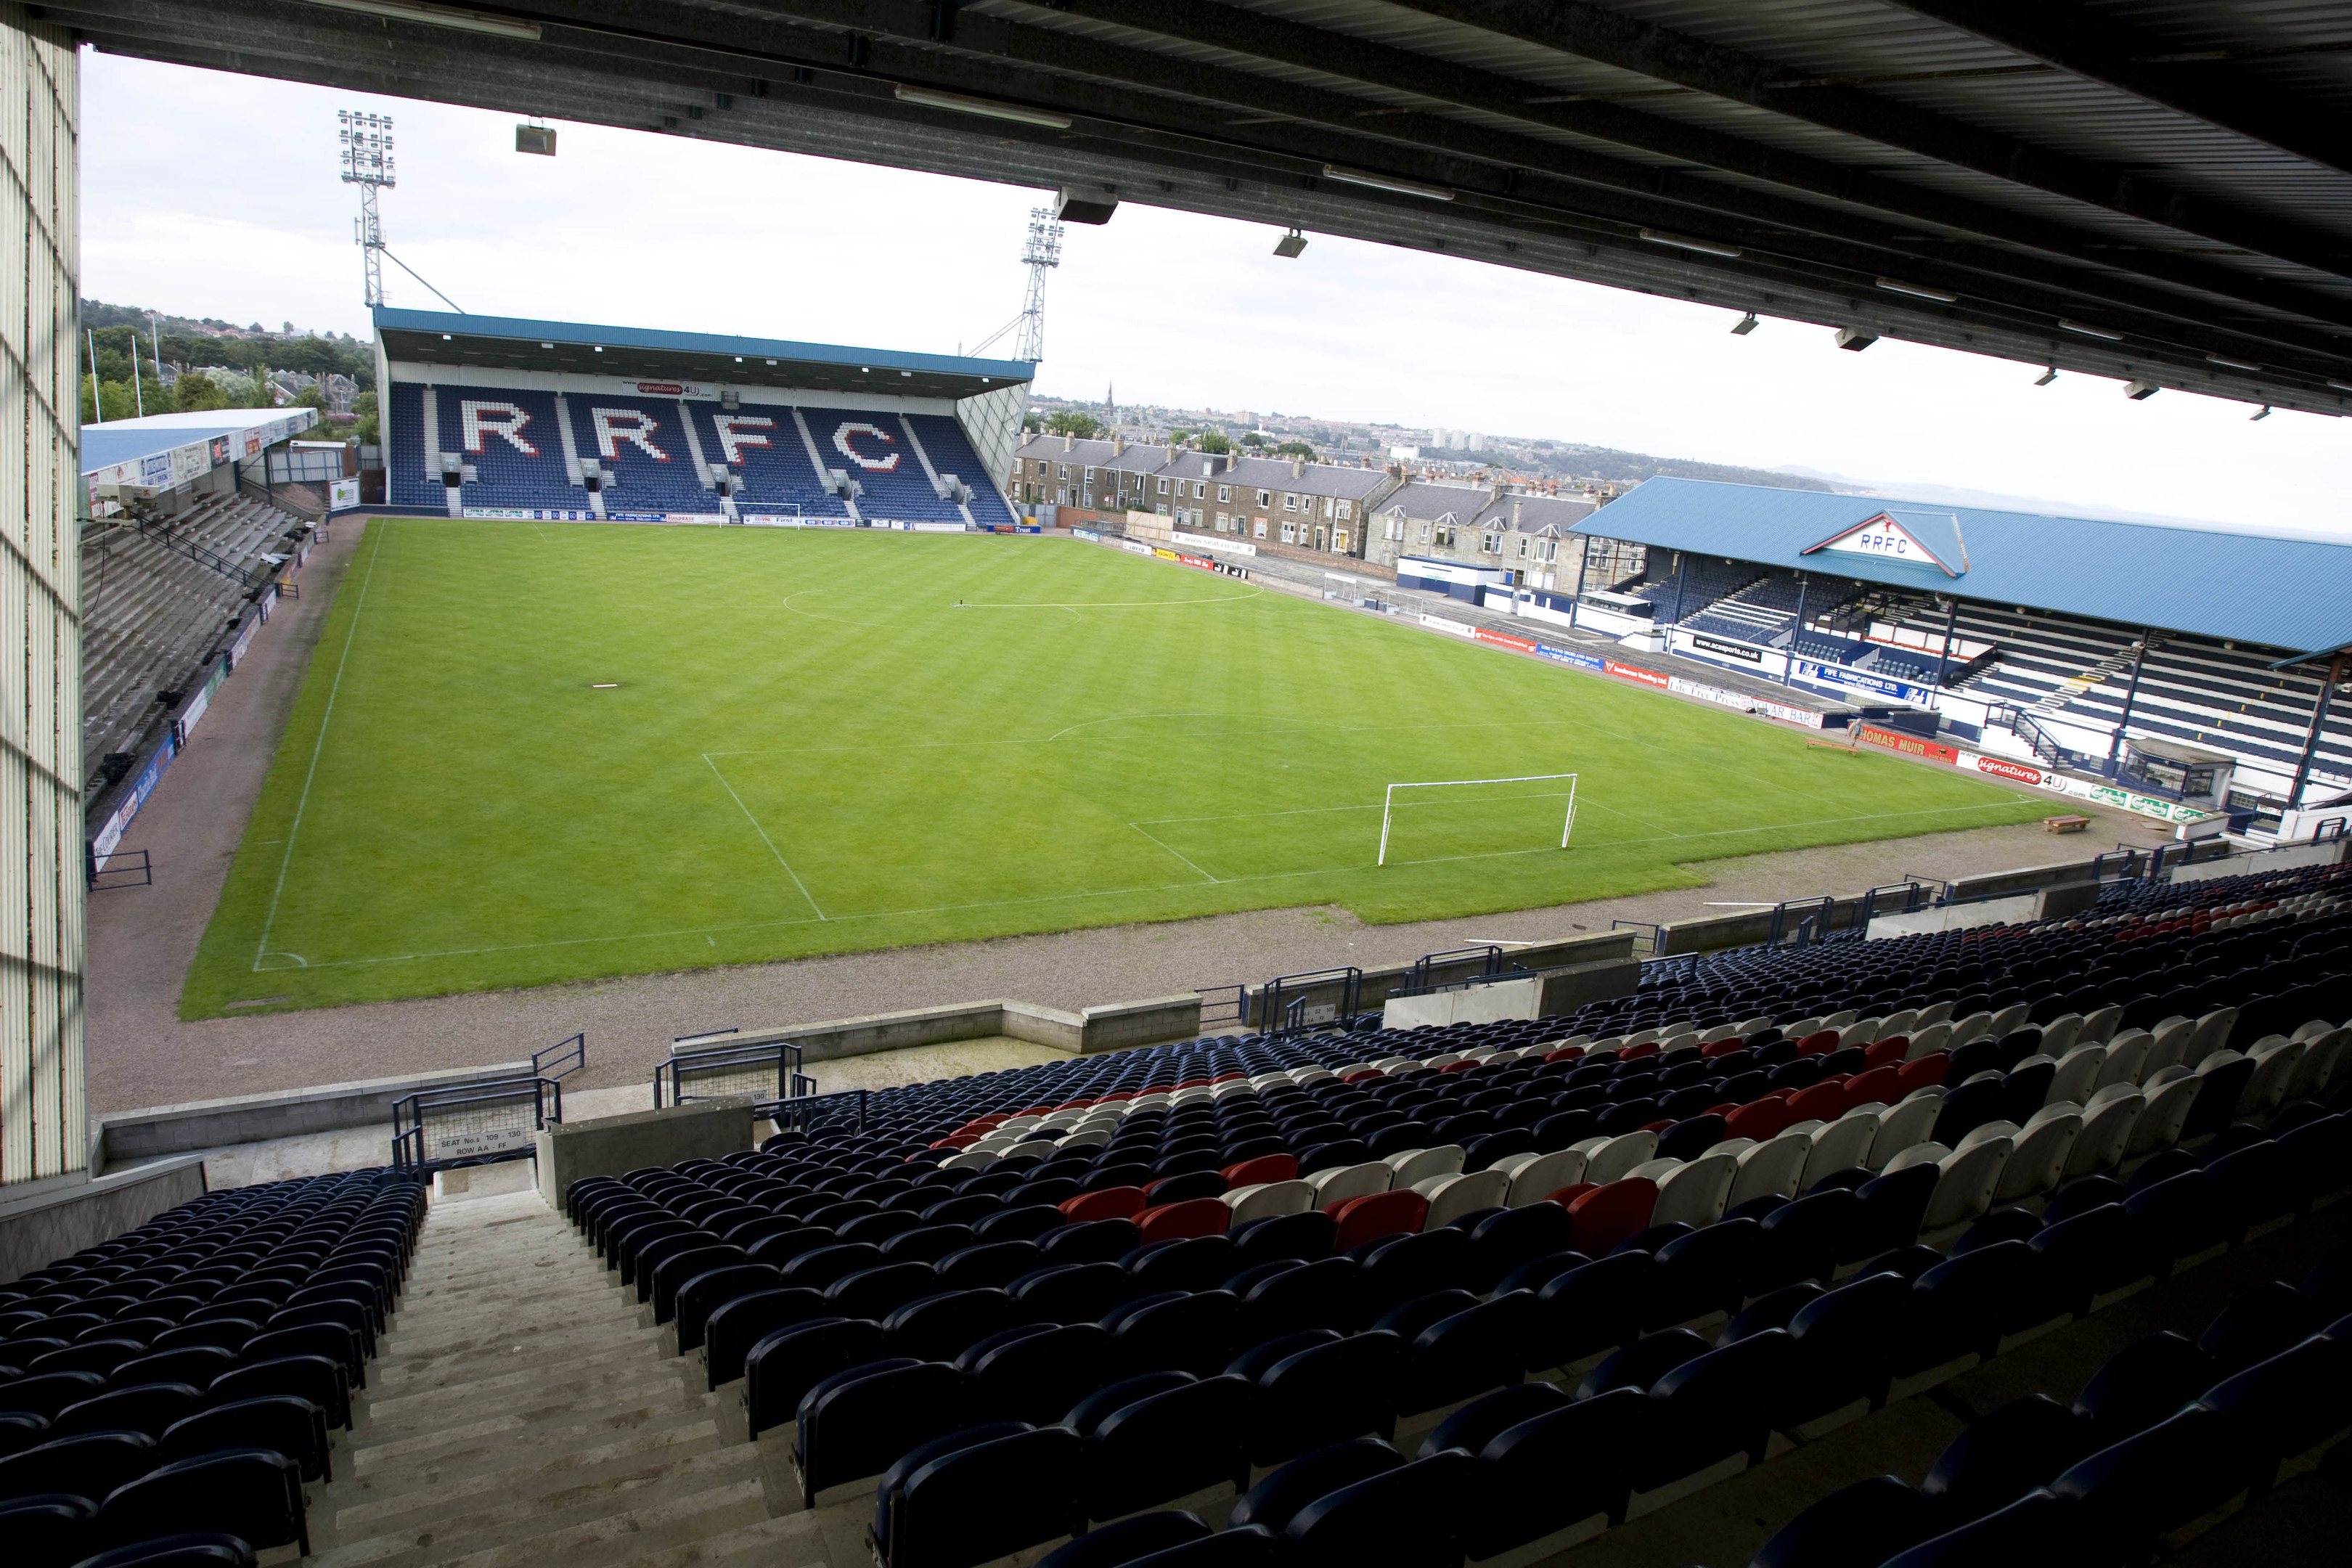 Stark's Park, home of Raith Rovers FC.